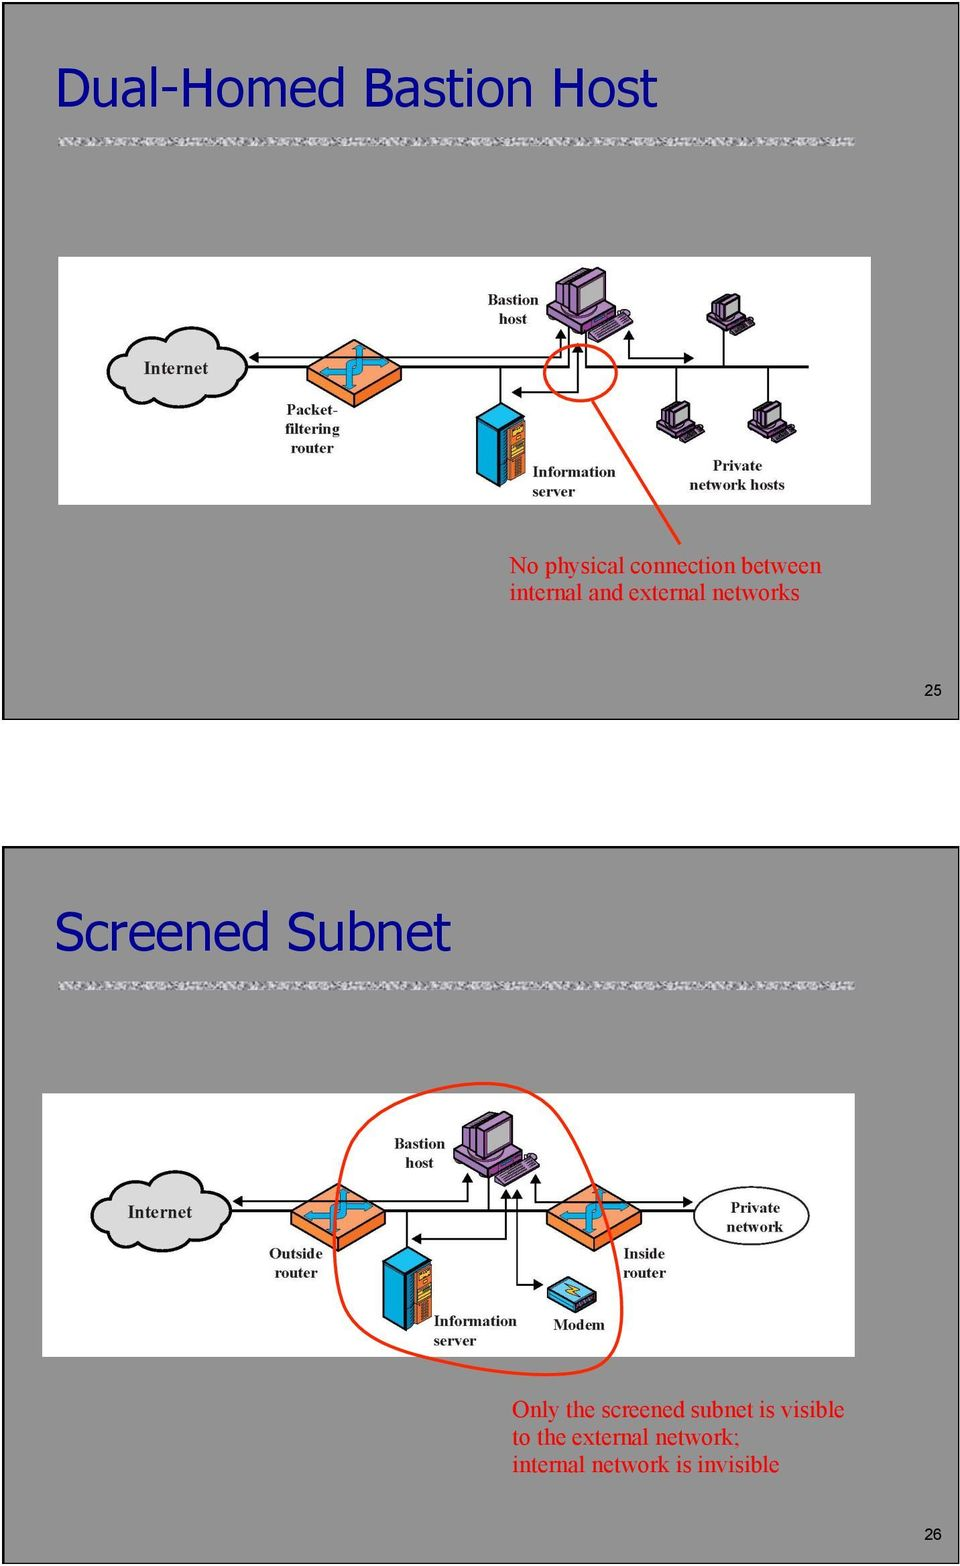 Subnet Only the screened subnet is visible to the